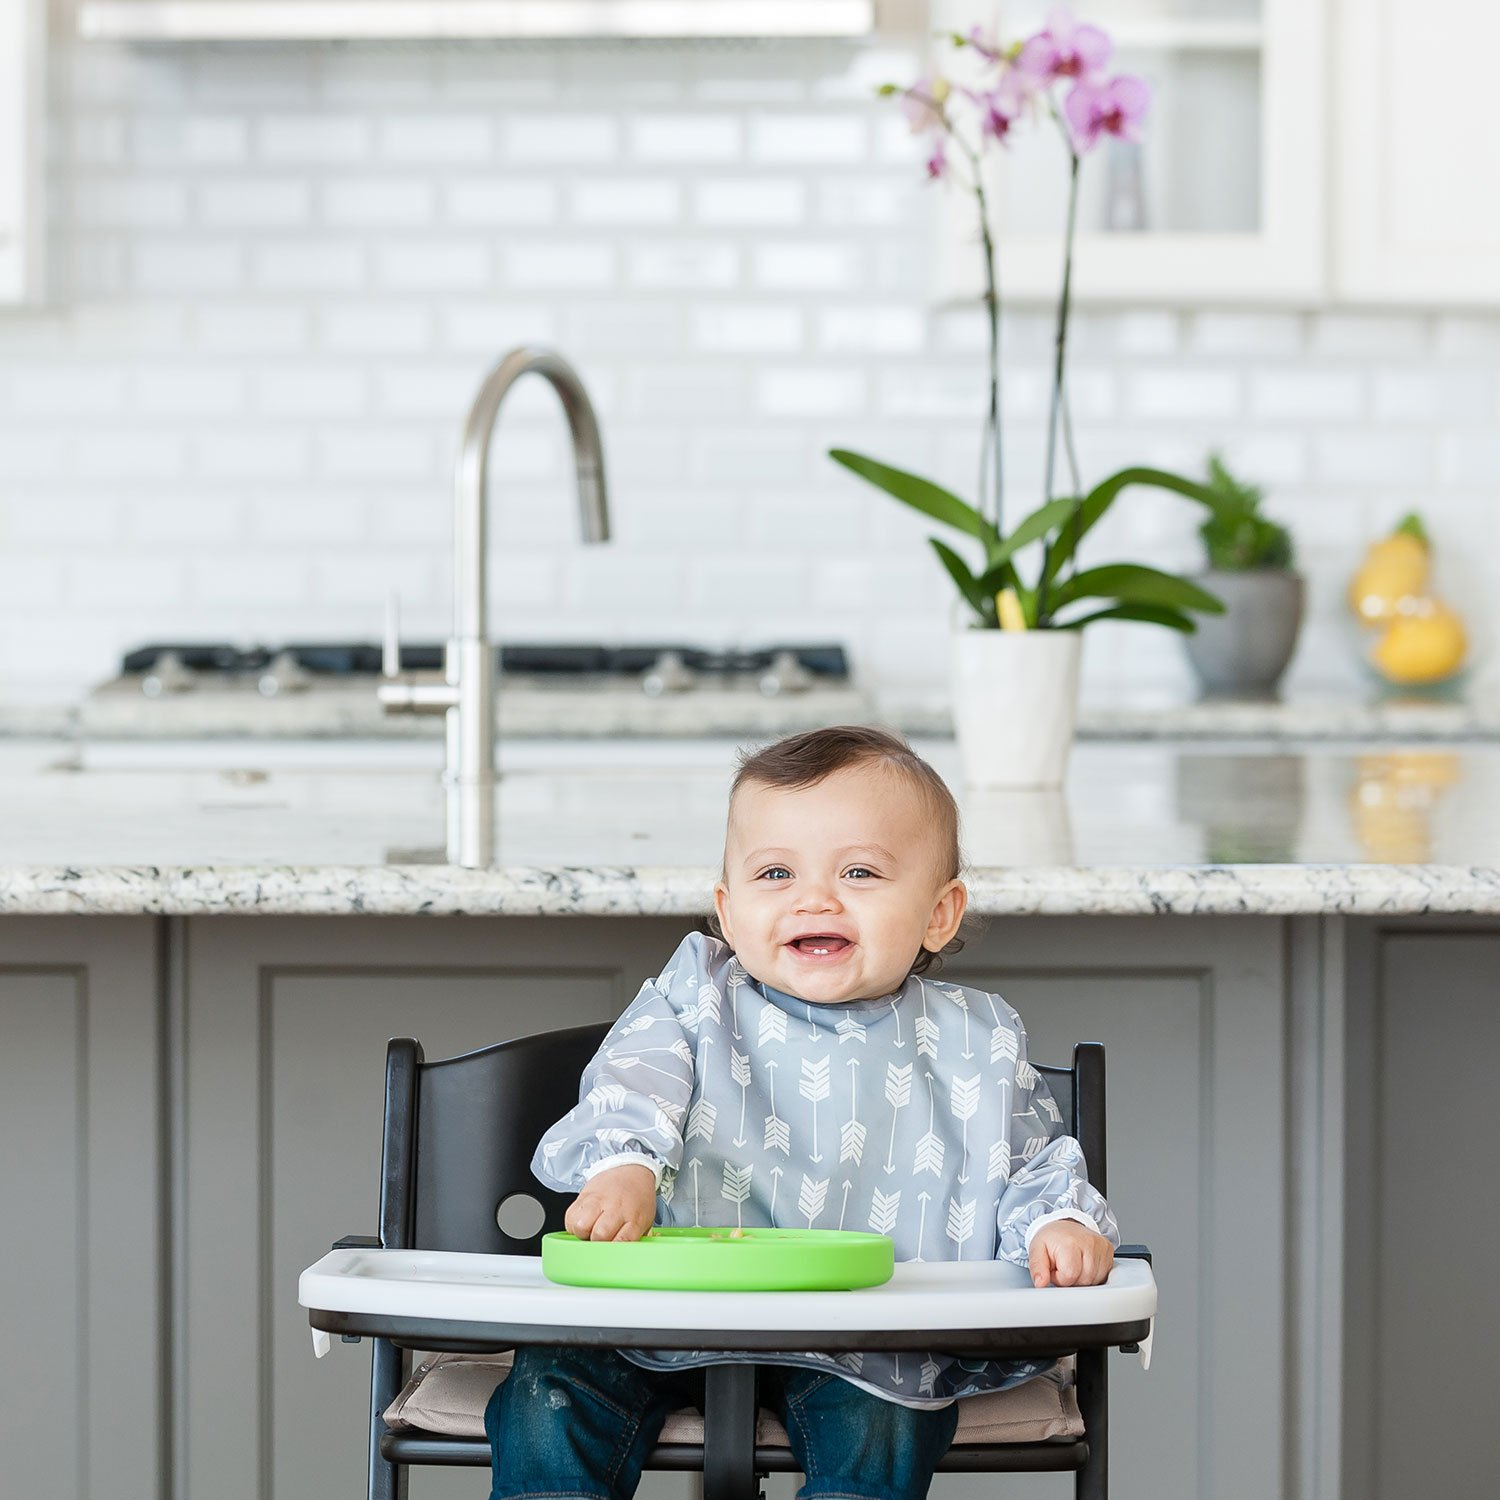 Suction Plate Bumkins Silicone Grip Dish Microwave Dishwasher Safe Marbled Baby Toddler Plate Divided Plate BPA Free